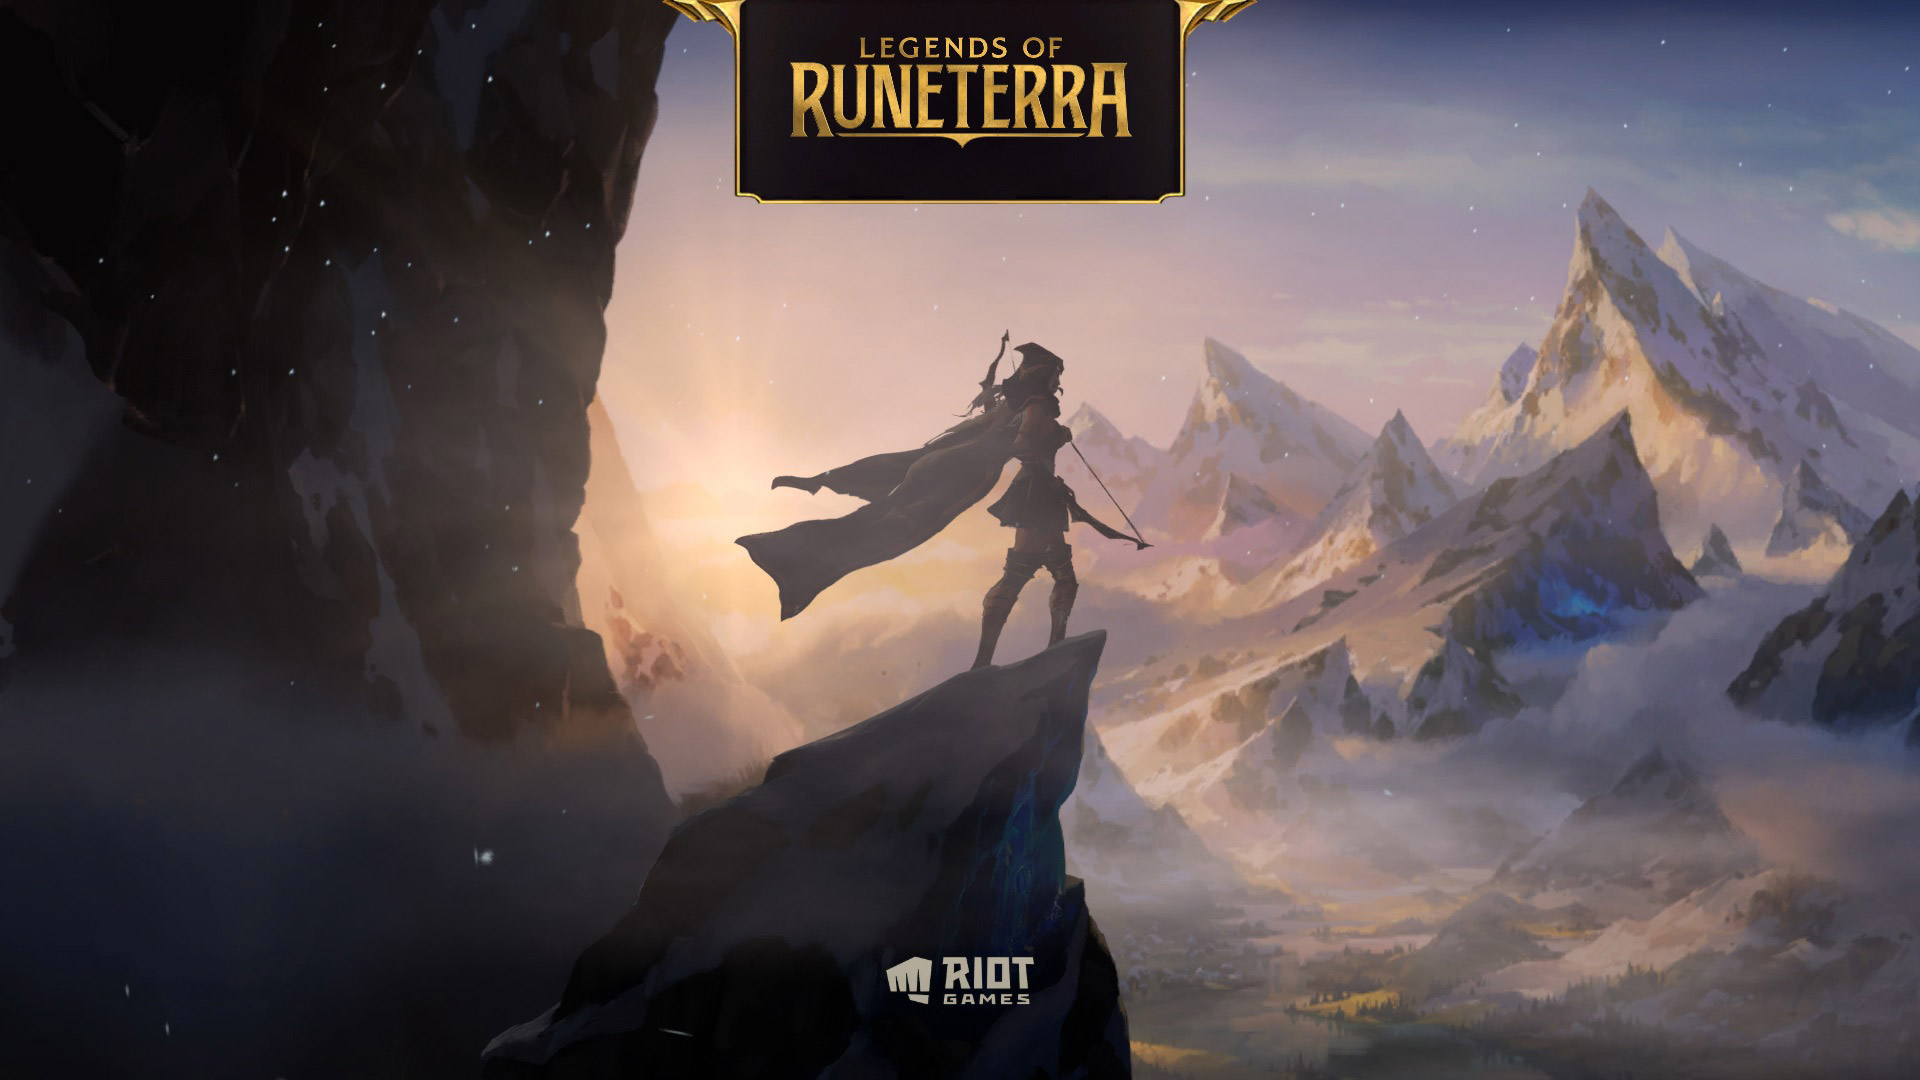 Free Legends of Runeterra Wallpaper in 1920x1080